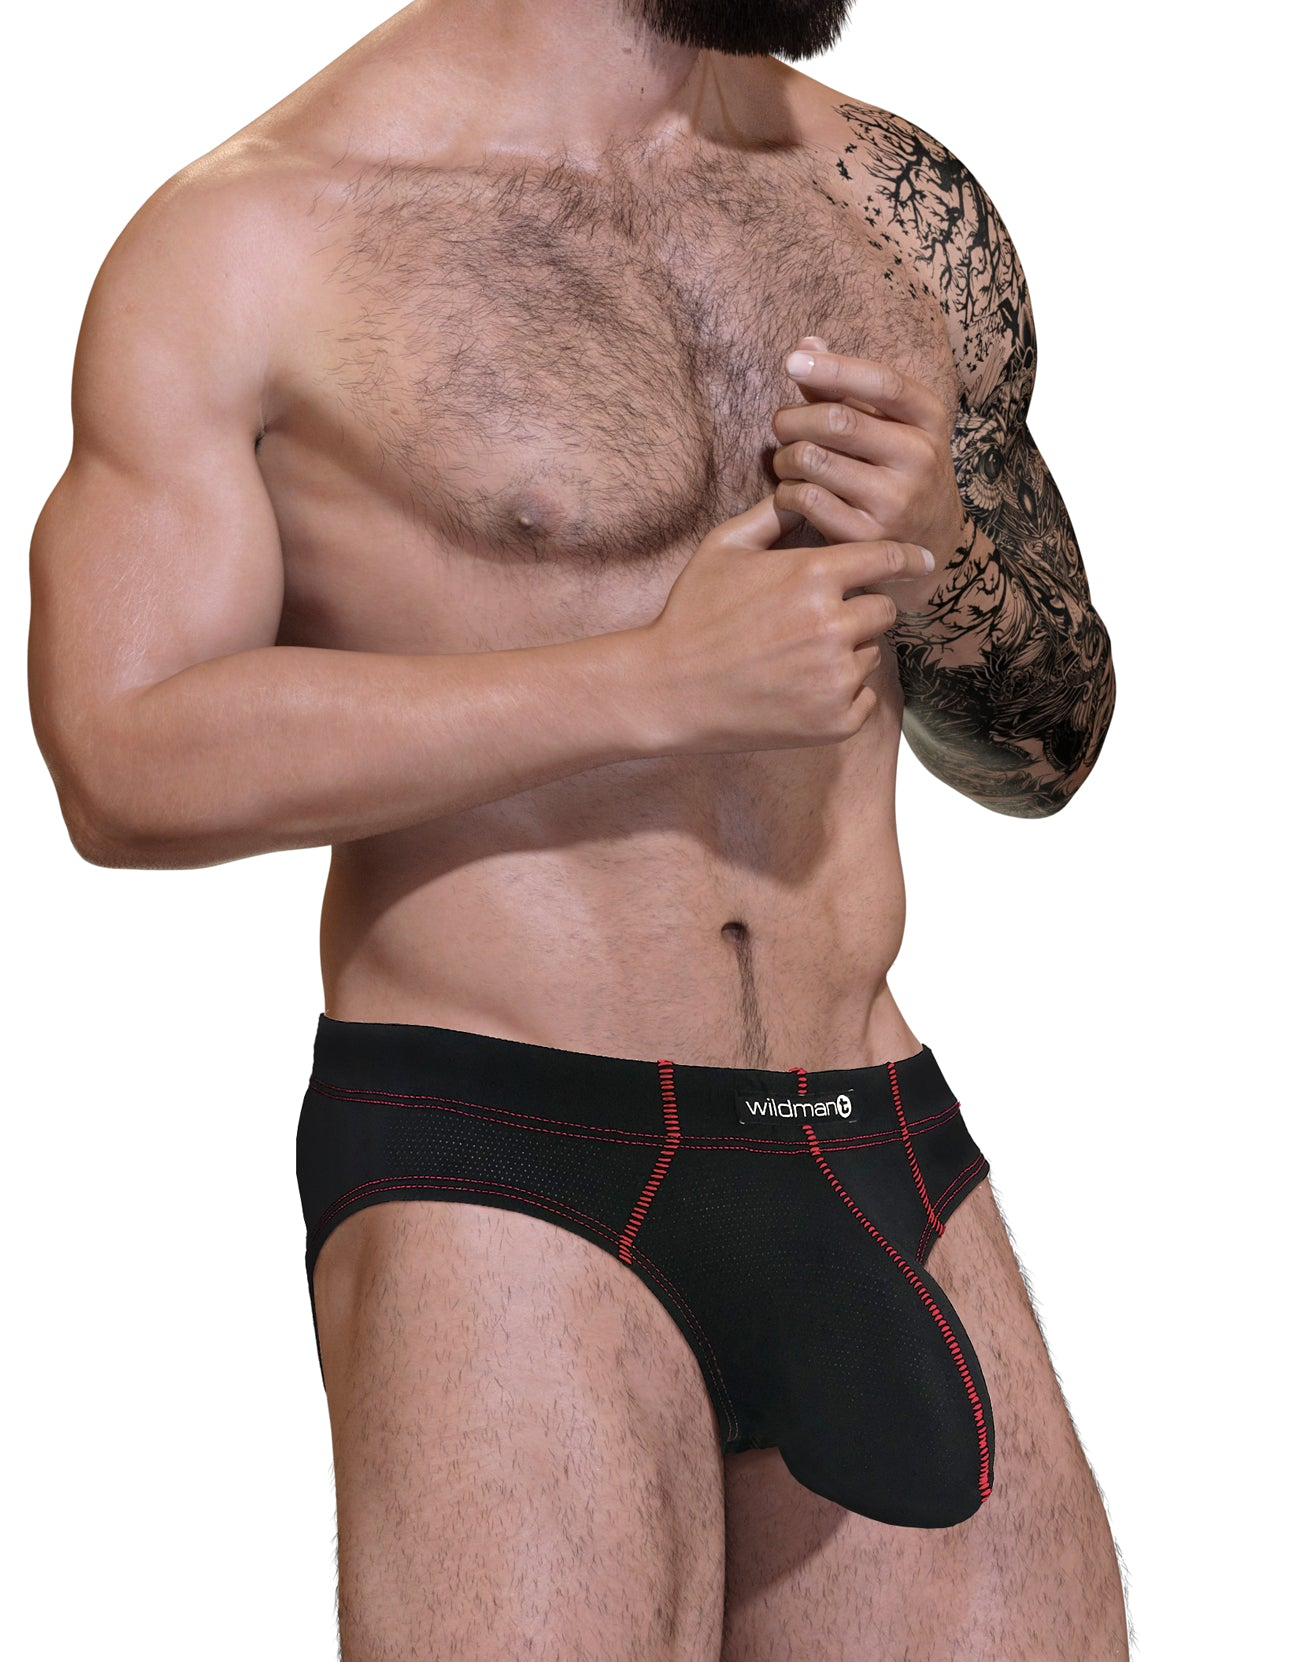 Stitch Big Boy Pouch Brief - Red - Big Penis Underwear, WildmanT - WildmanT